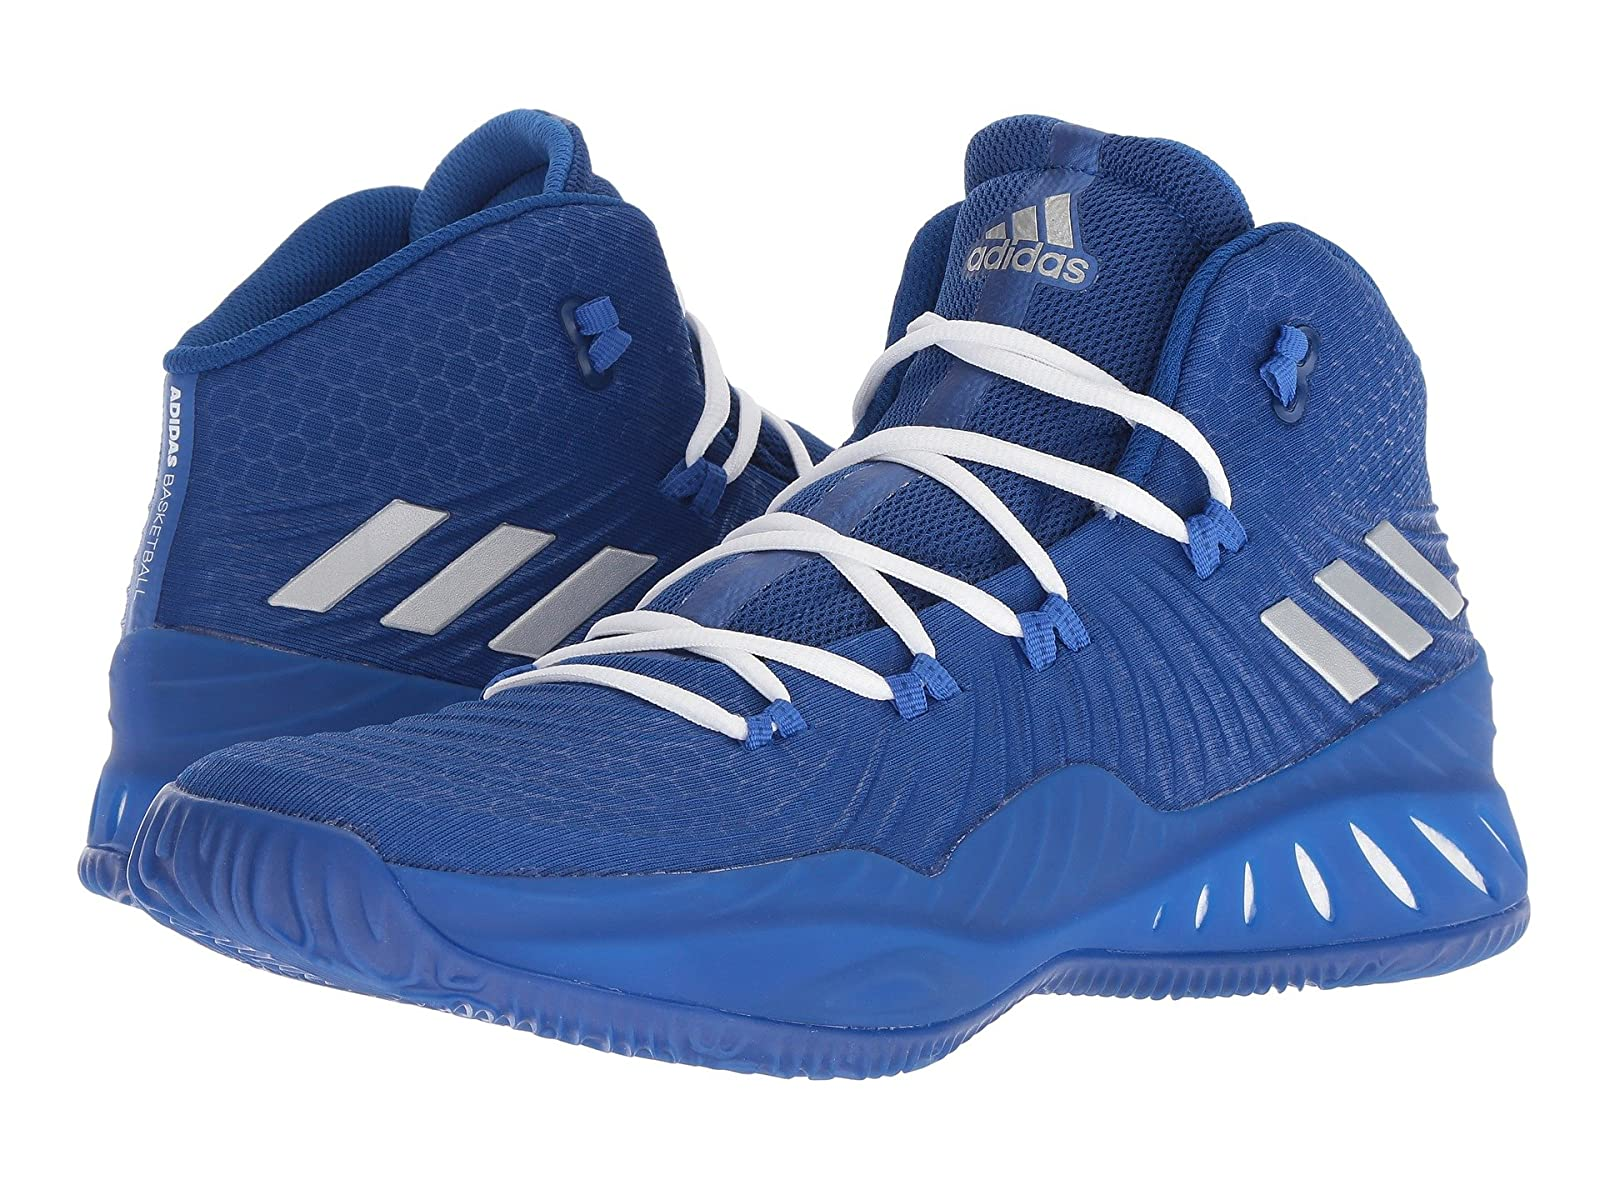 adidas Crazy Explosive 2017Stylish and characteristic shoes